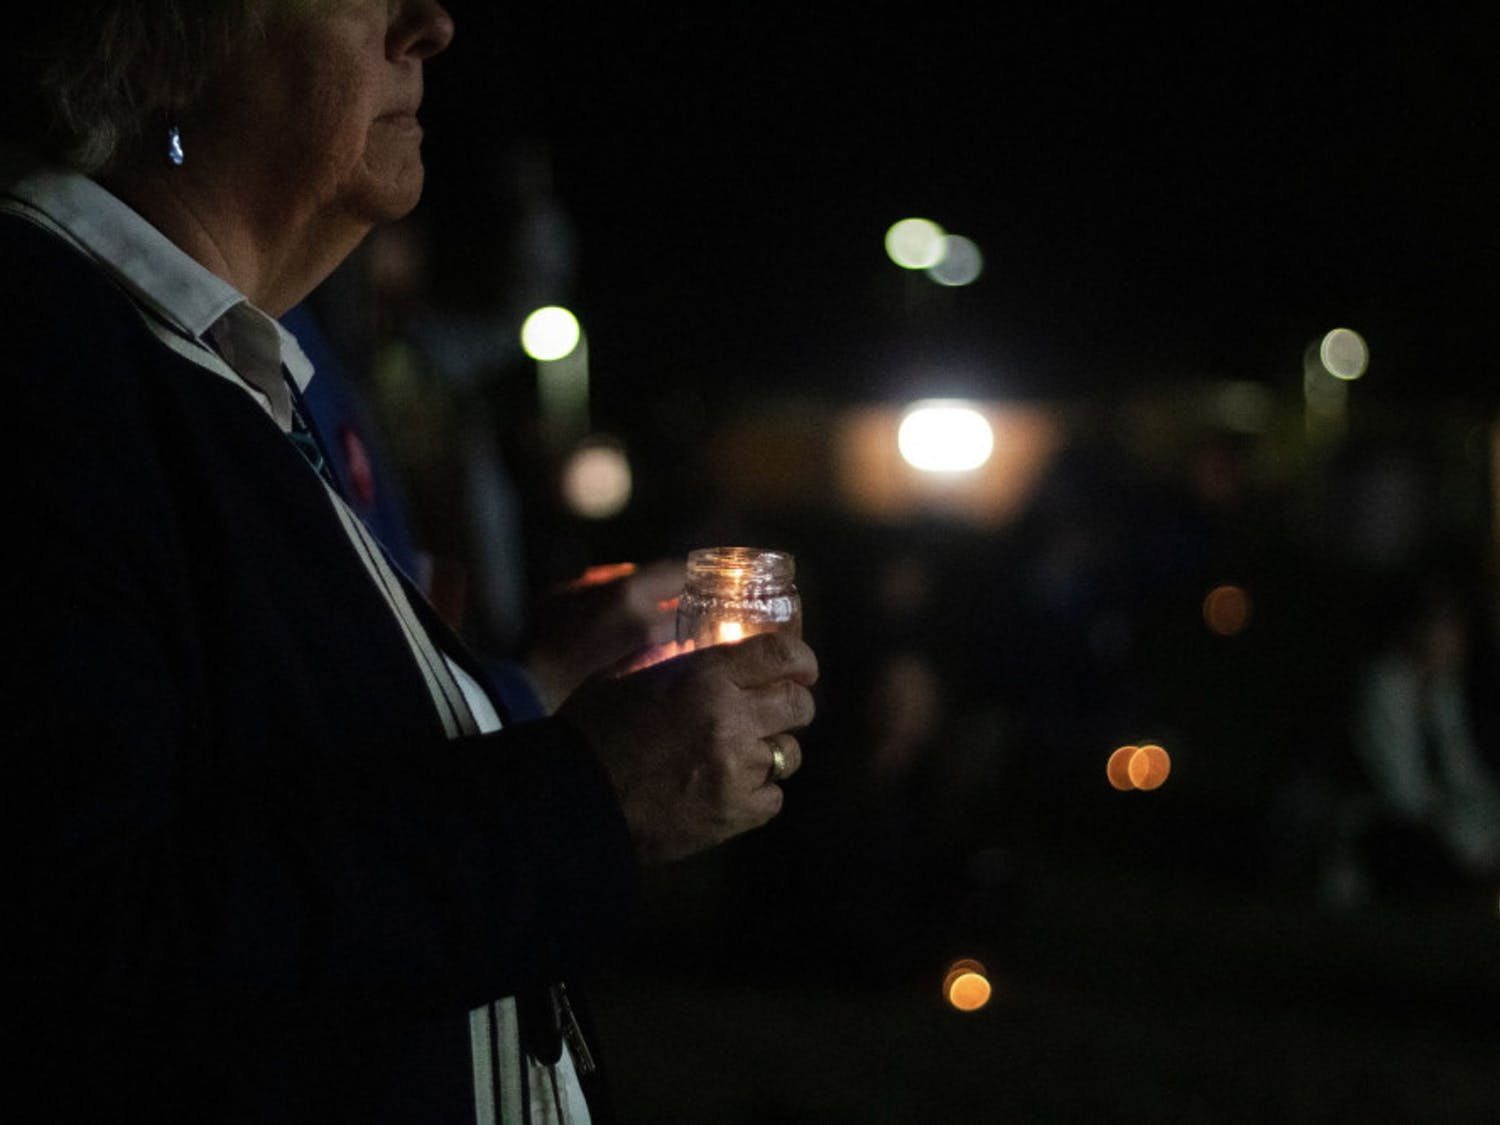 Flo Turcotte holds a candle for the vigil during the Transgender Day of Remembrance at Depot Park Wednesday night.